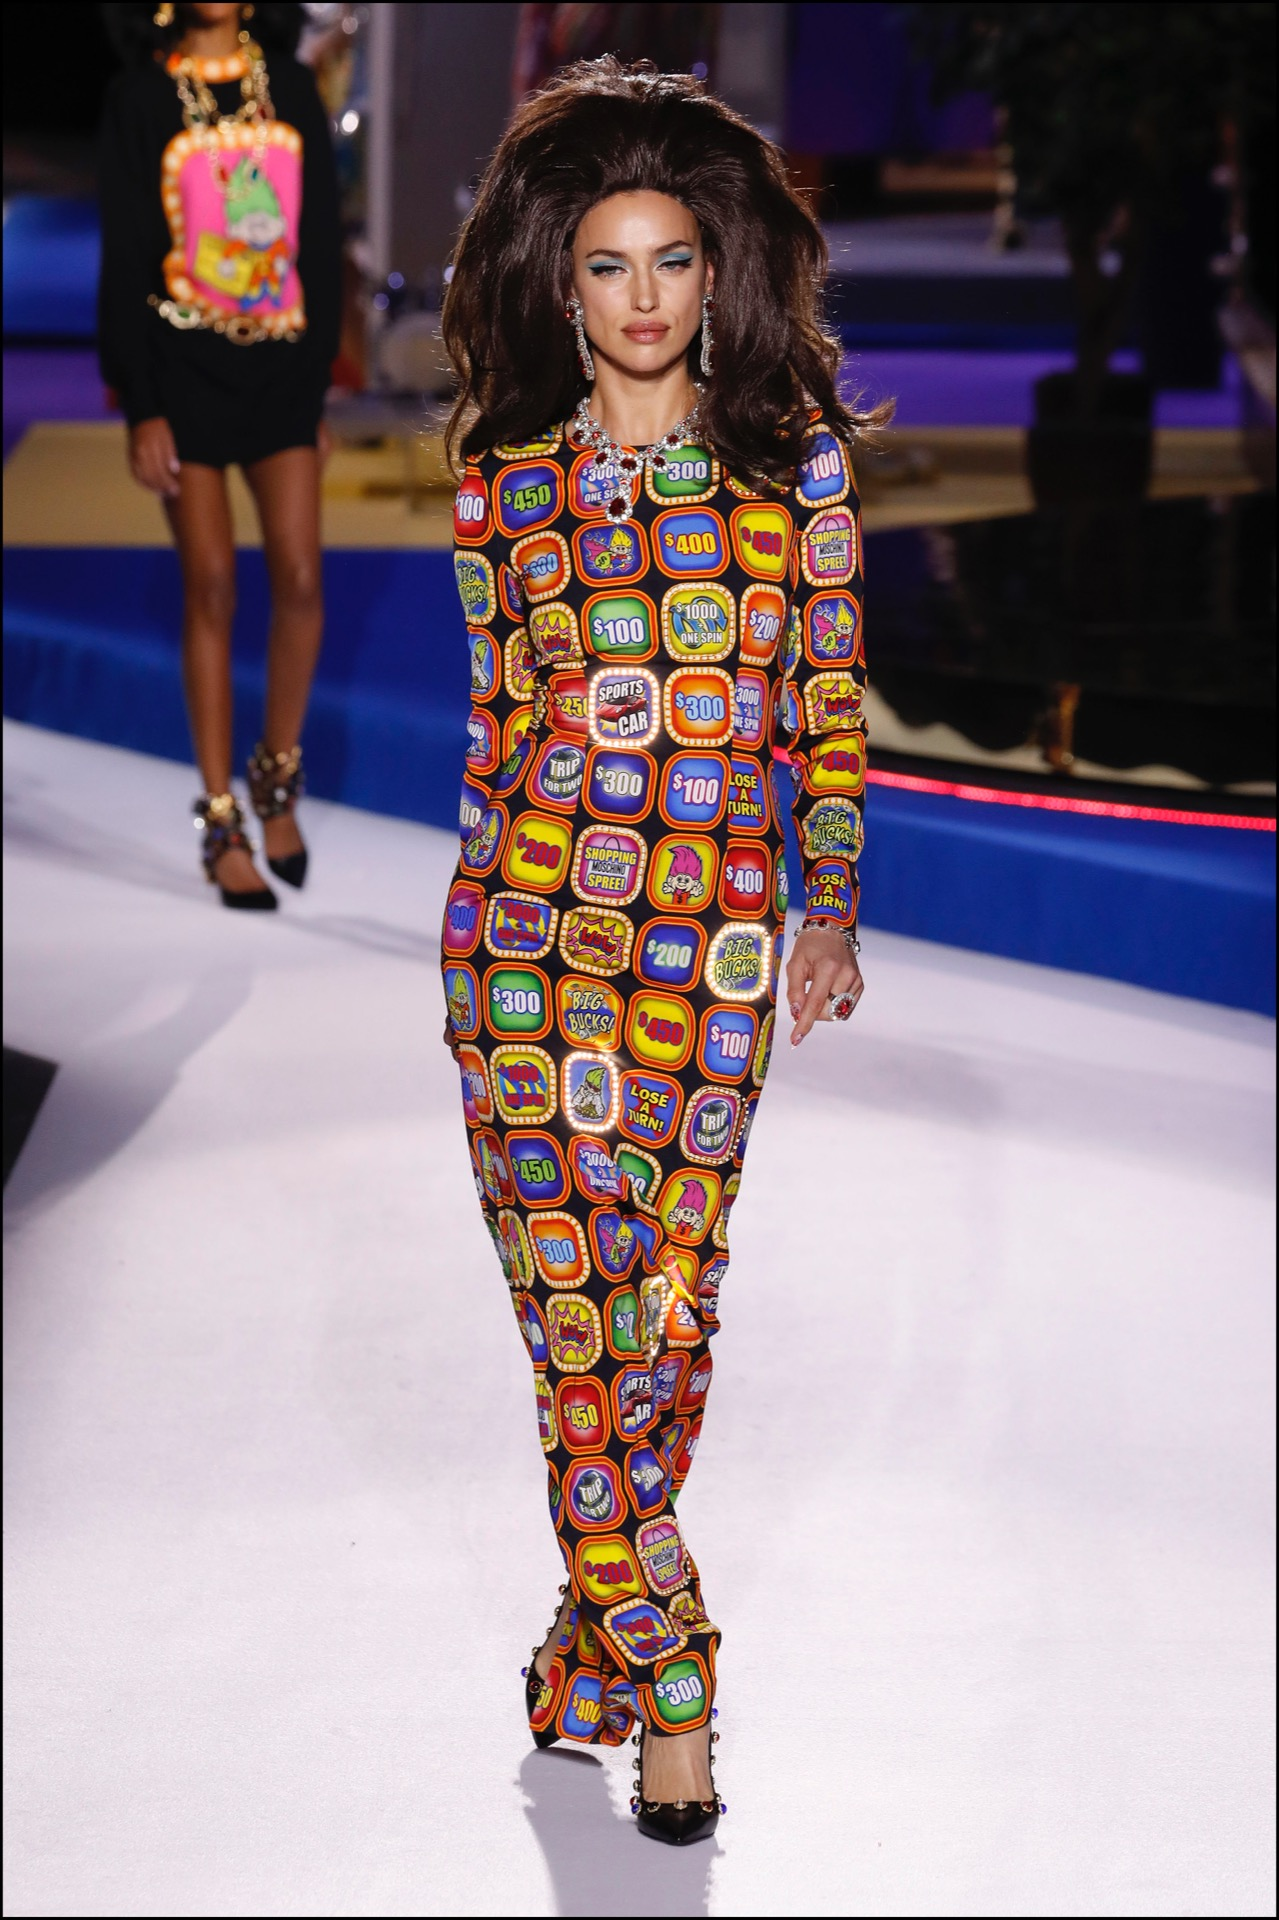 "Irina Shayk - DÈfilÈ Moschino ""Collection PrÍt-‡-Porter Automne-Hiver 2019/2020"" lors de la Fashion Week de Milan (MLFW), le 22 fÈvrier 2019. Moschino Fashion Show ""Ready-to-Wear Fall-Winter 2019/2020"" at Milan Fashion Week, February 22nd, 2019."